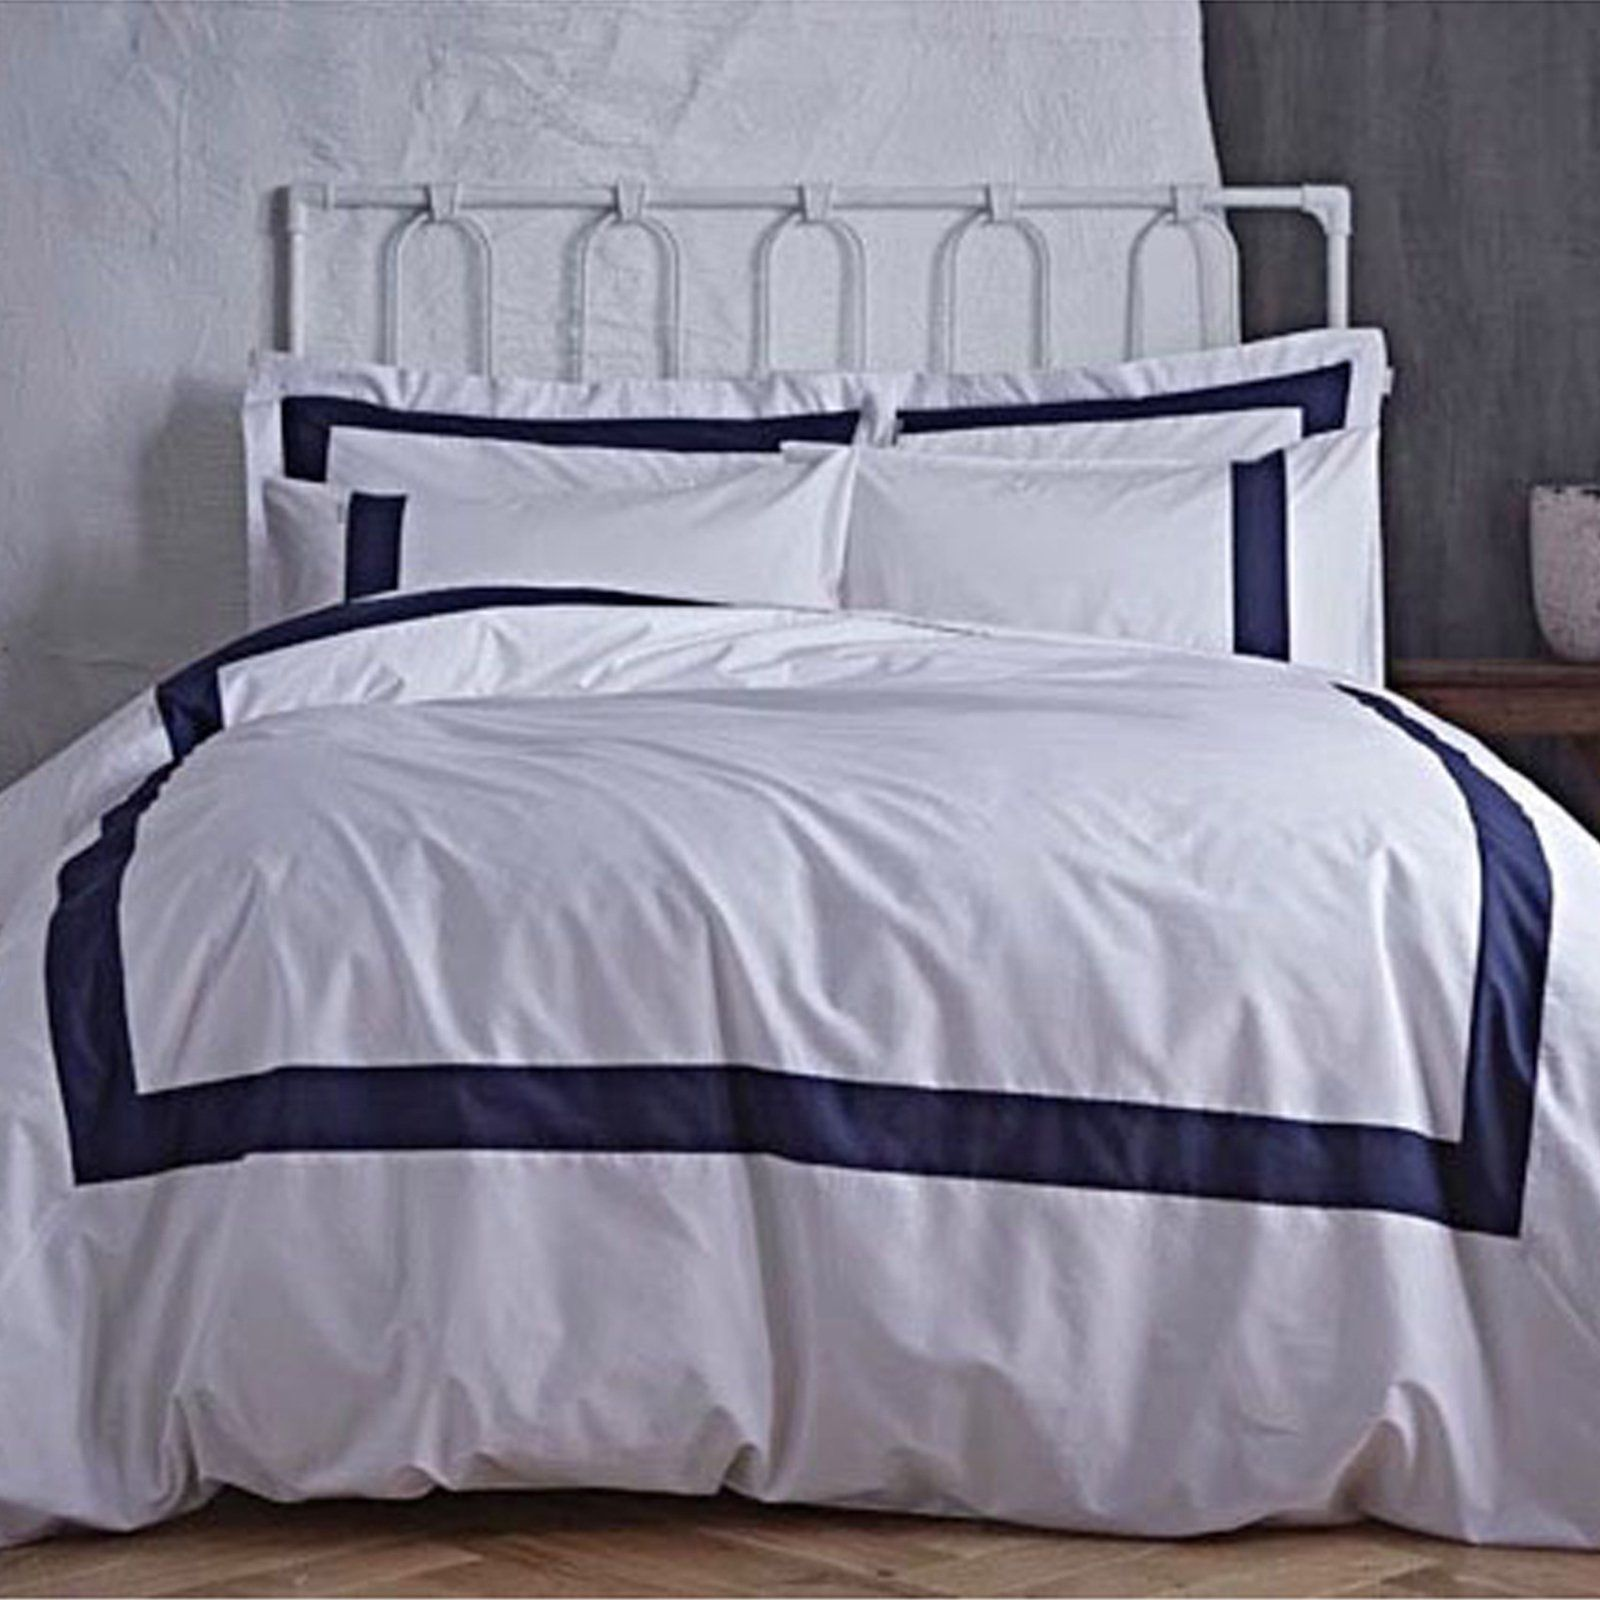 Bianca Tailored Navy Super King Duvet Cover & Pillowcase